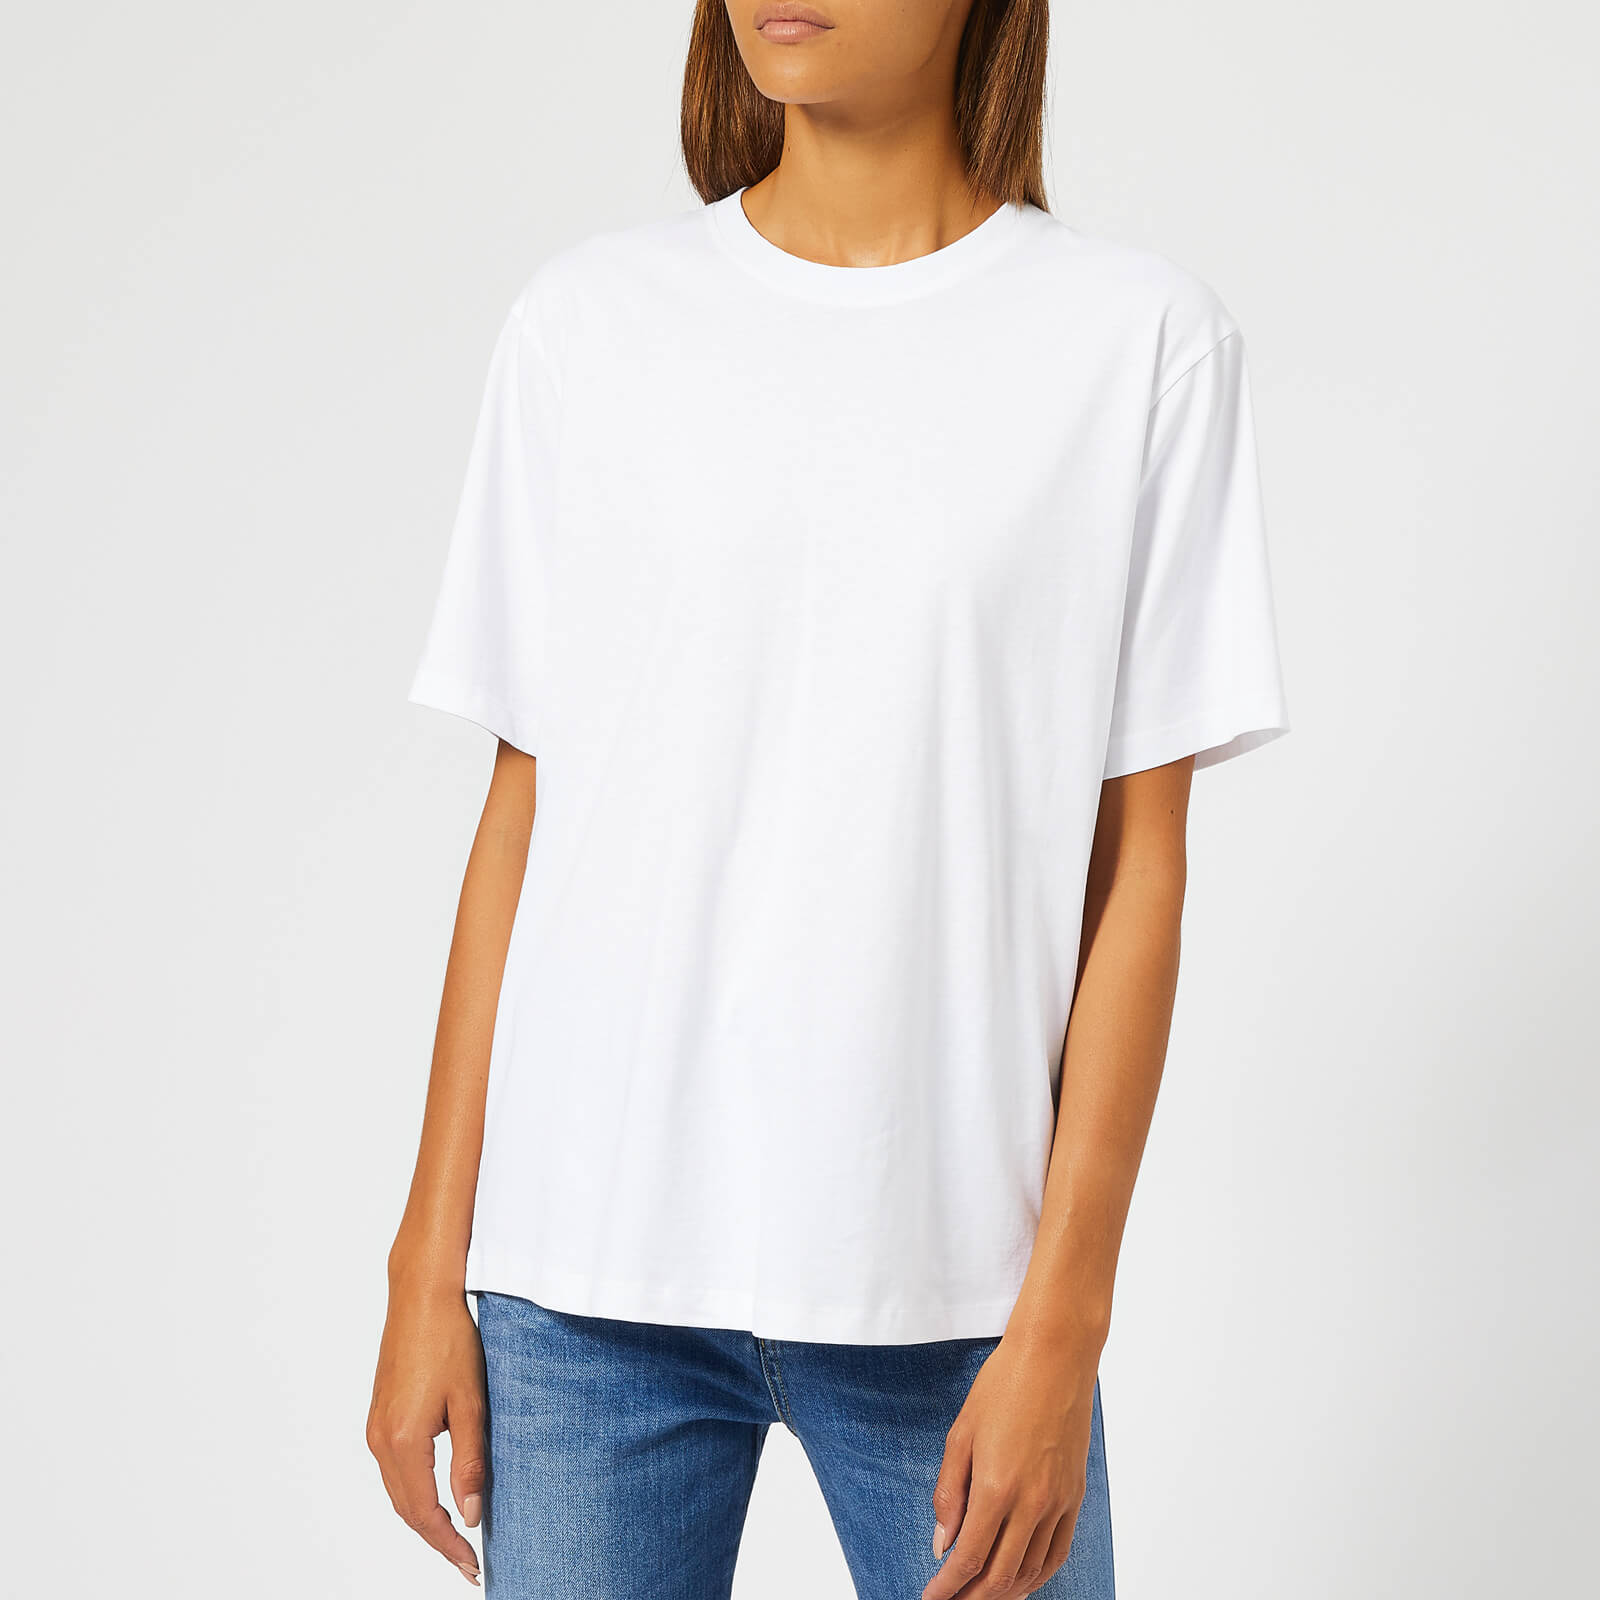 6243d89d9088 Victoria, Victoria Beckham Women's The Victoria T-Shirt - White - Free UK  Delivery over £50